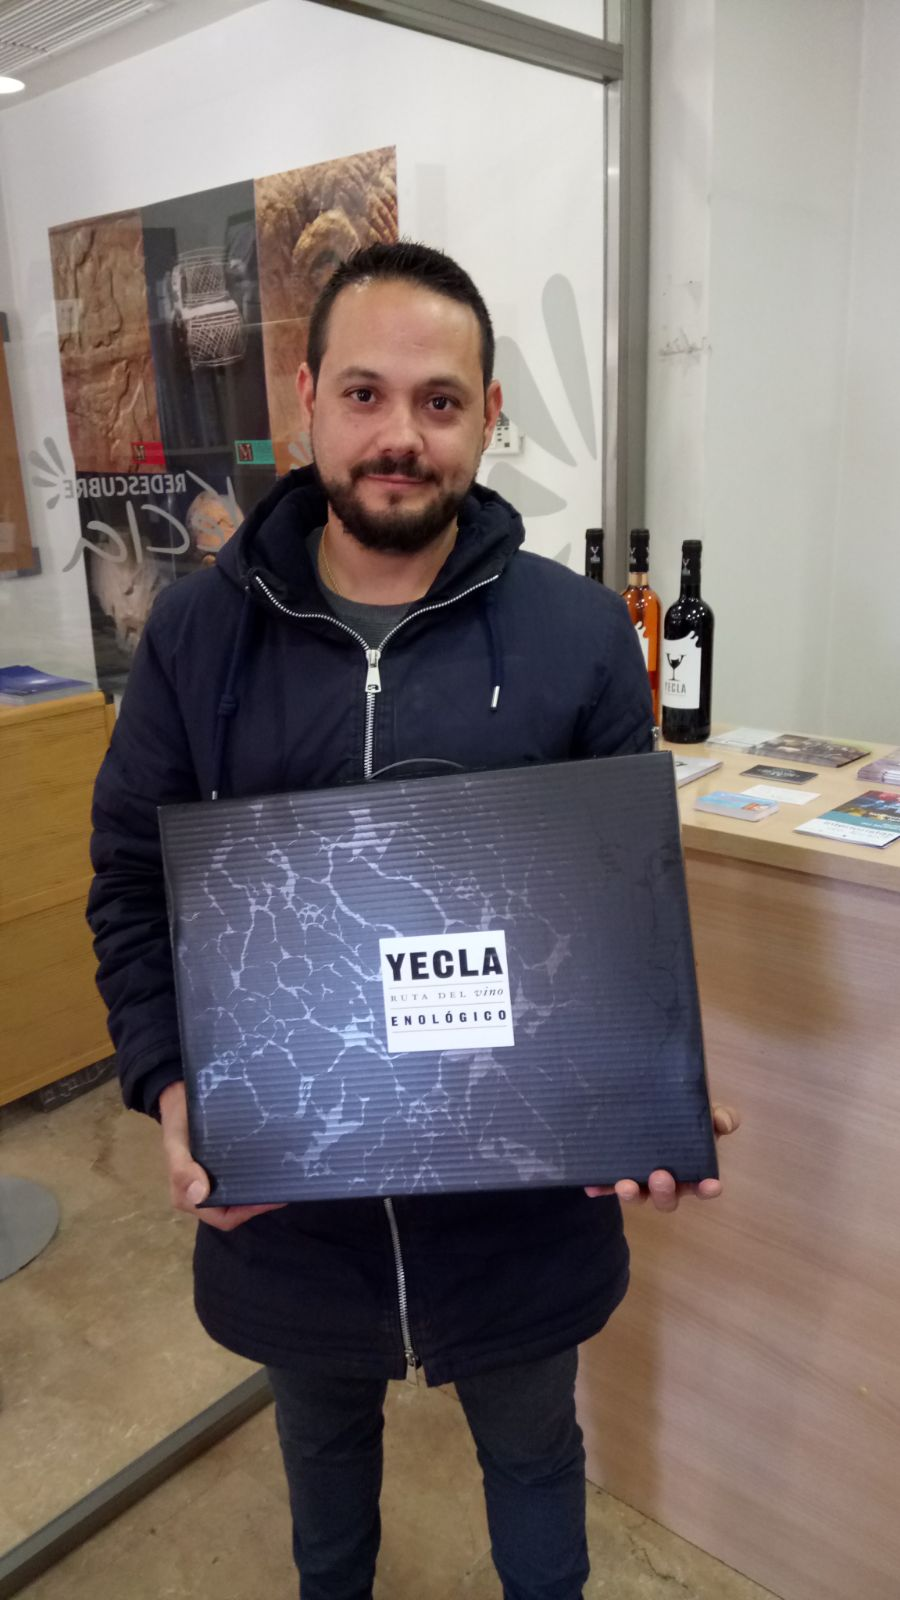 Jose Juan picking up his batch of products from the Wine Route of Yecla in the 4 photographic draw